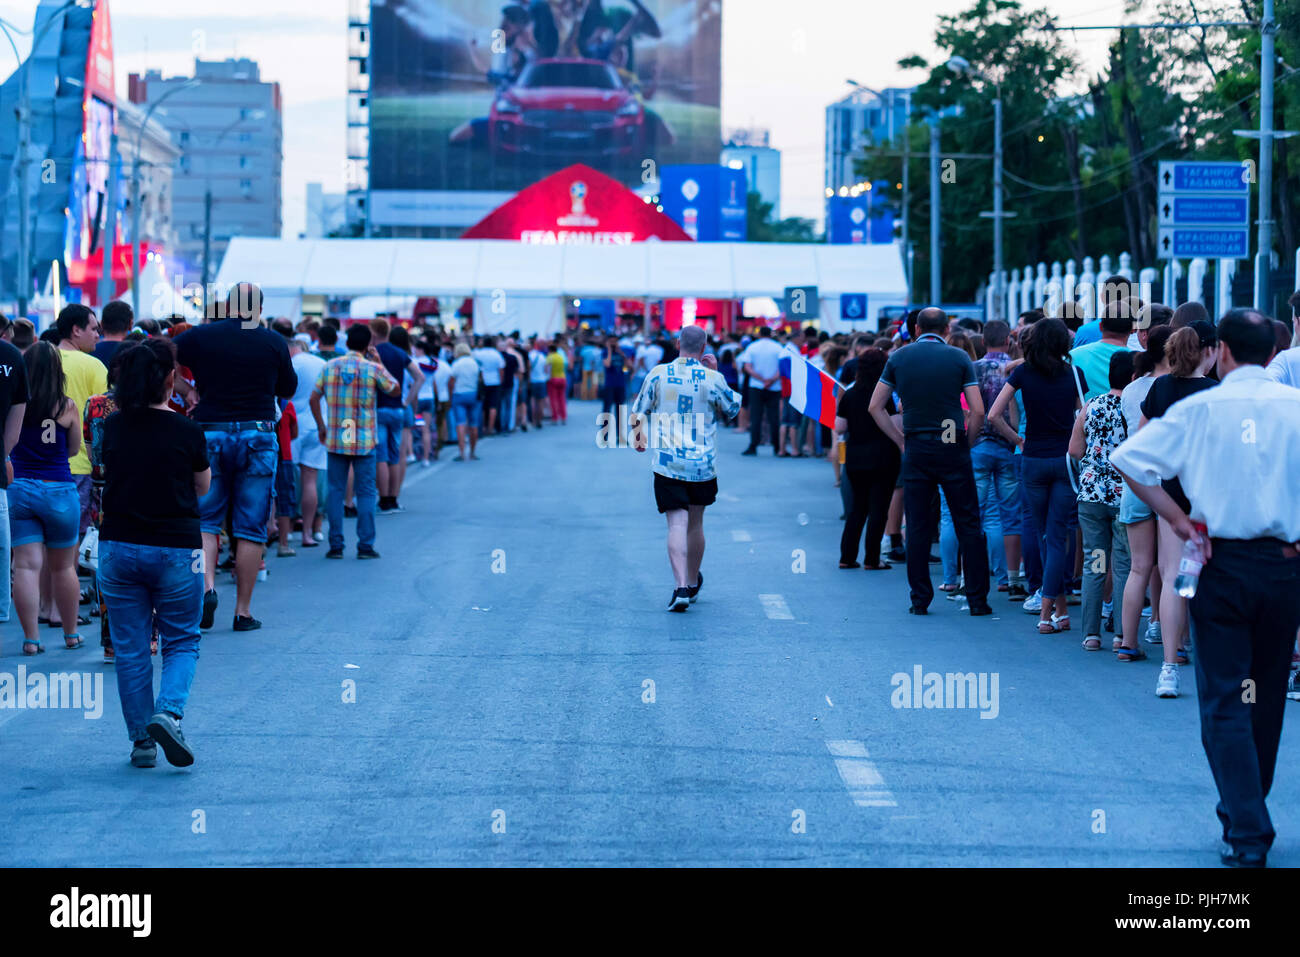 ROSTOV-ON-DON, RUSSIA - JULY 7, 2018: People at Fan Fest, Rostov-on-Don, Russia - Stock Image